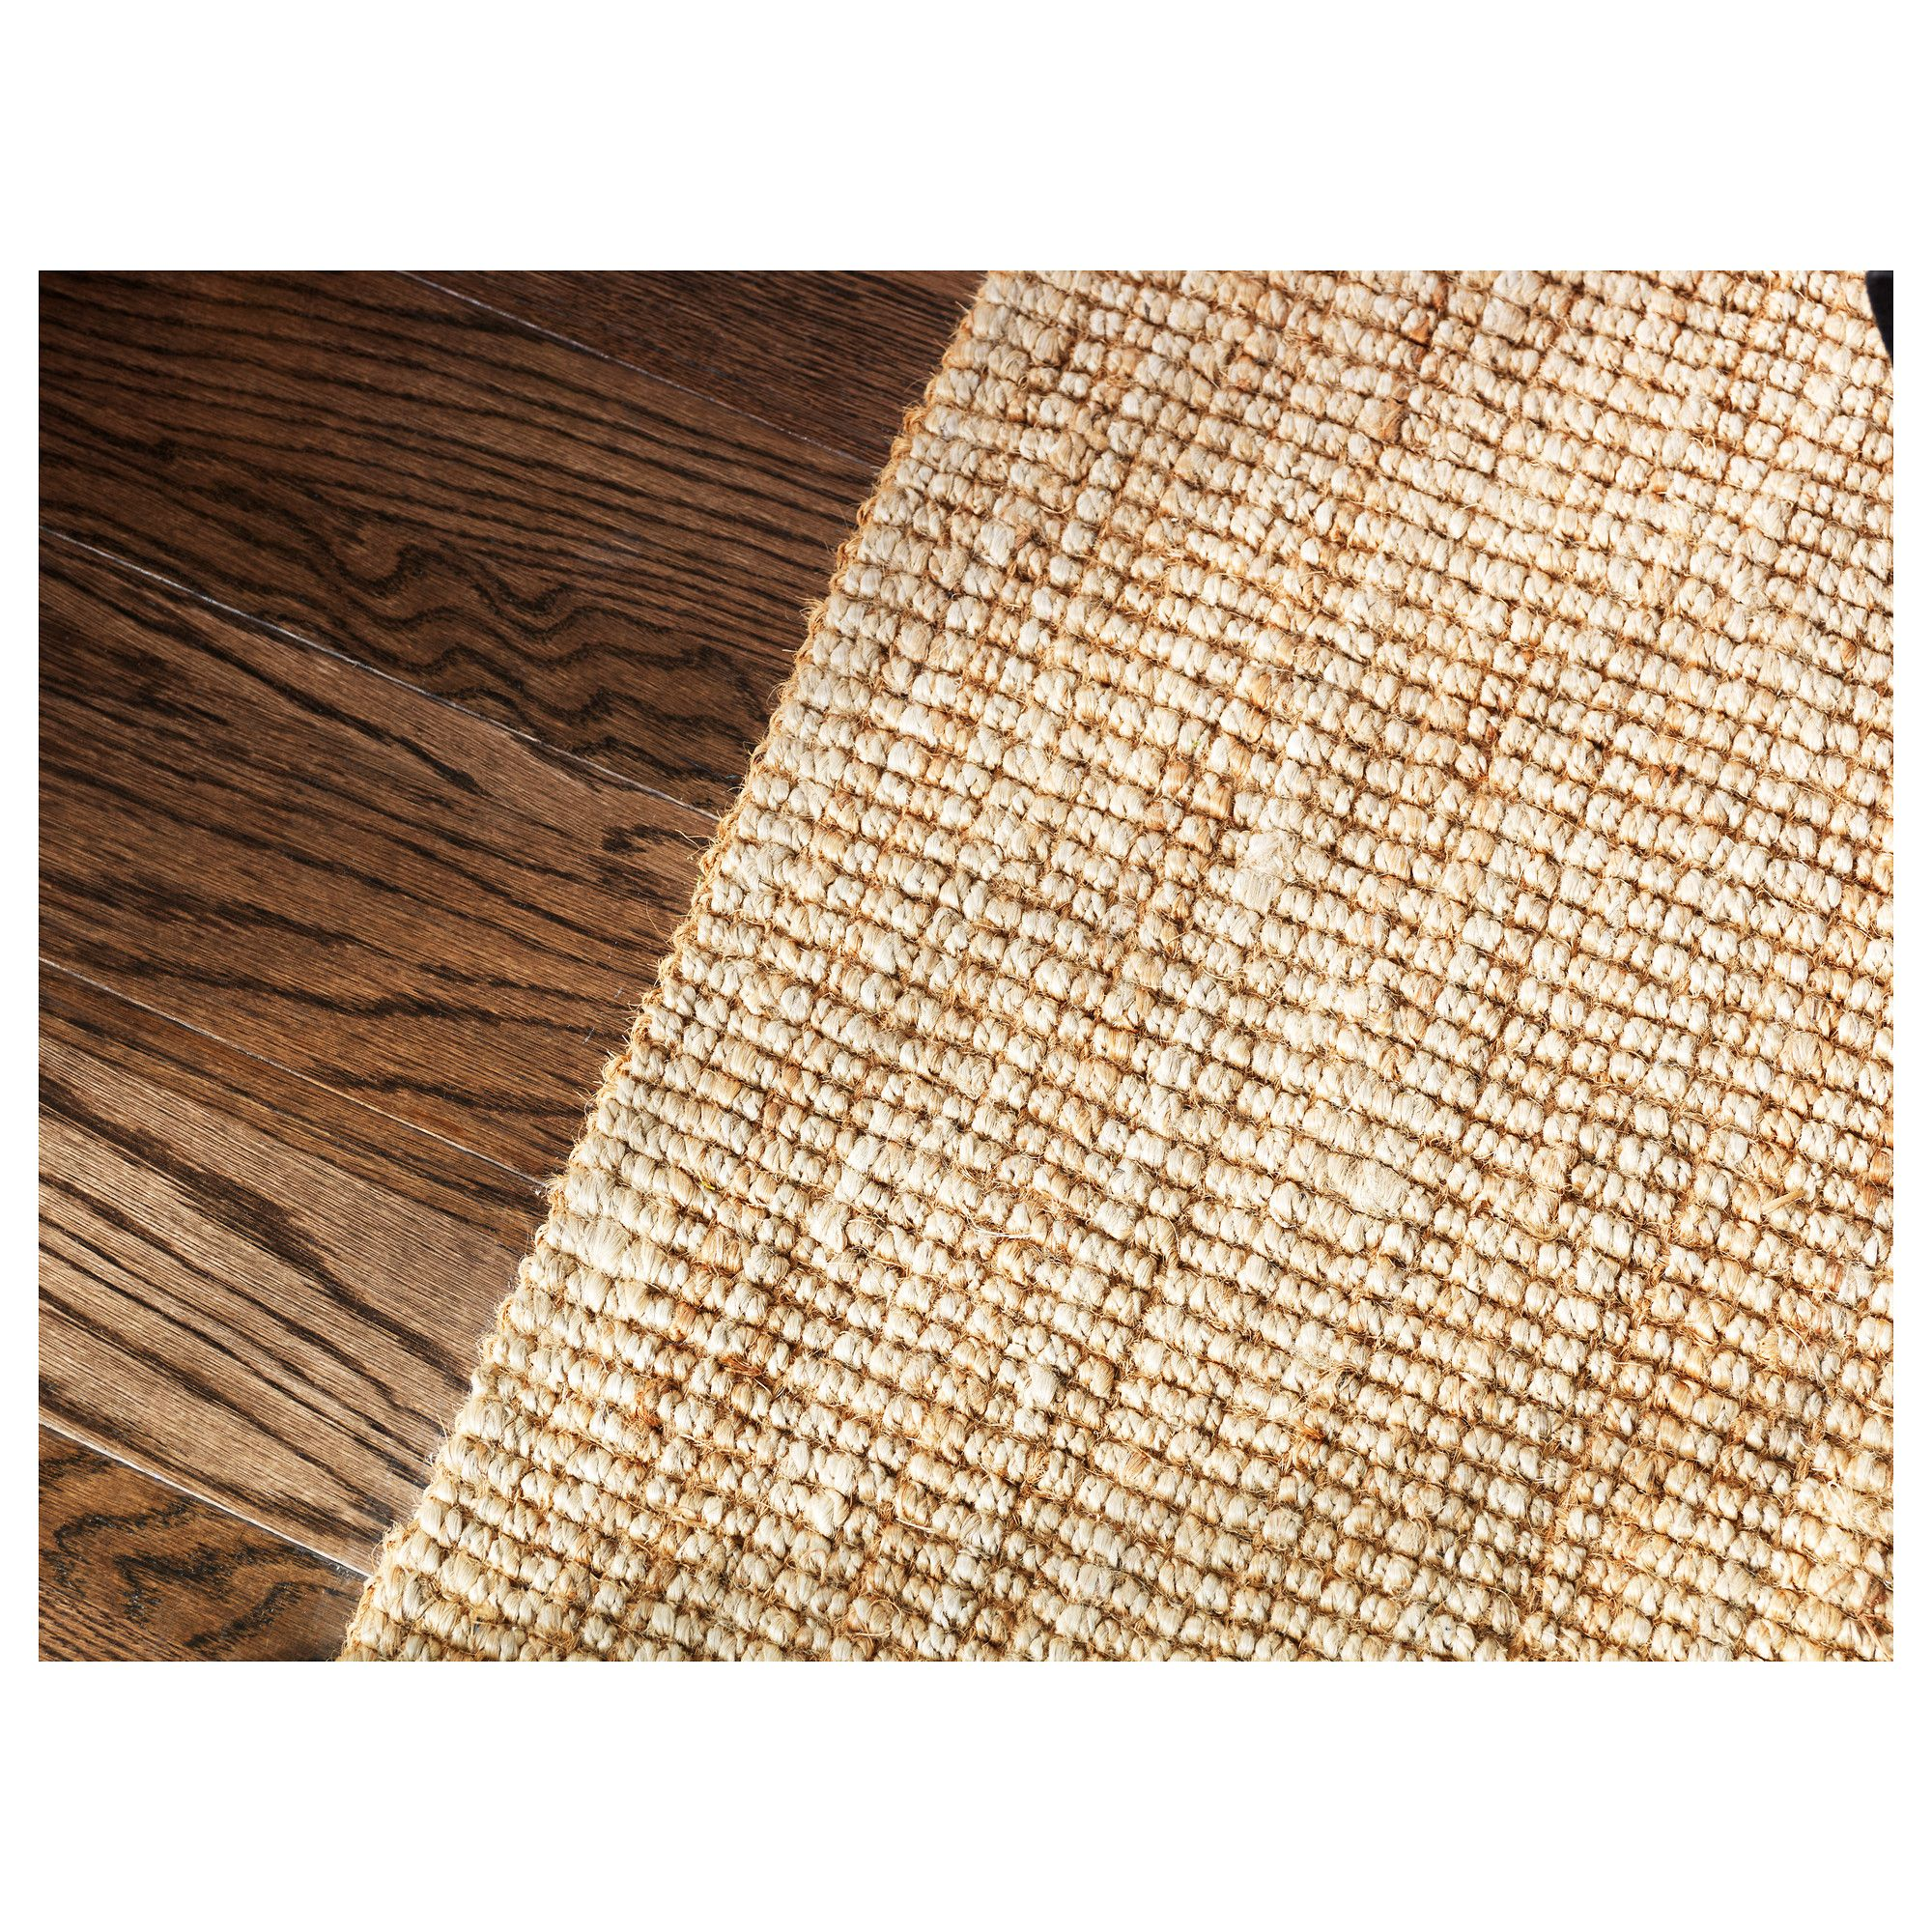 Sisal Rugs Ikea With Well Made Safavieh Natural Fiber Design For Your Livingroom Decor Popular Decor Sisal Rug Natural Fibers